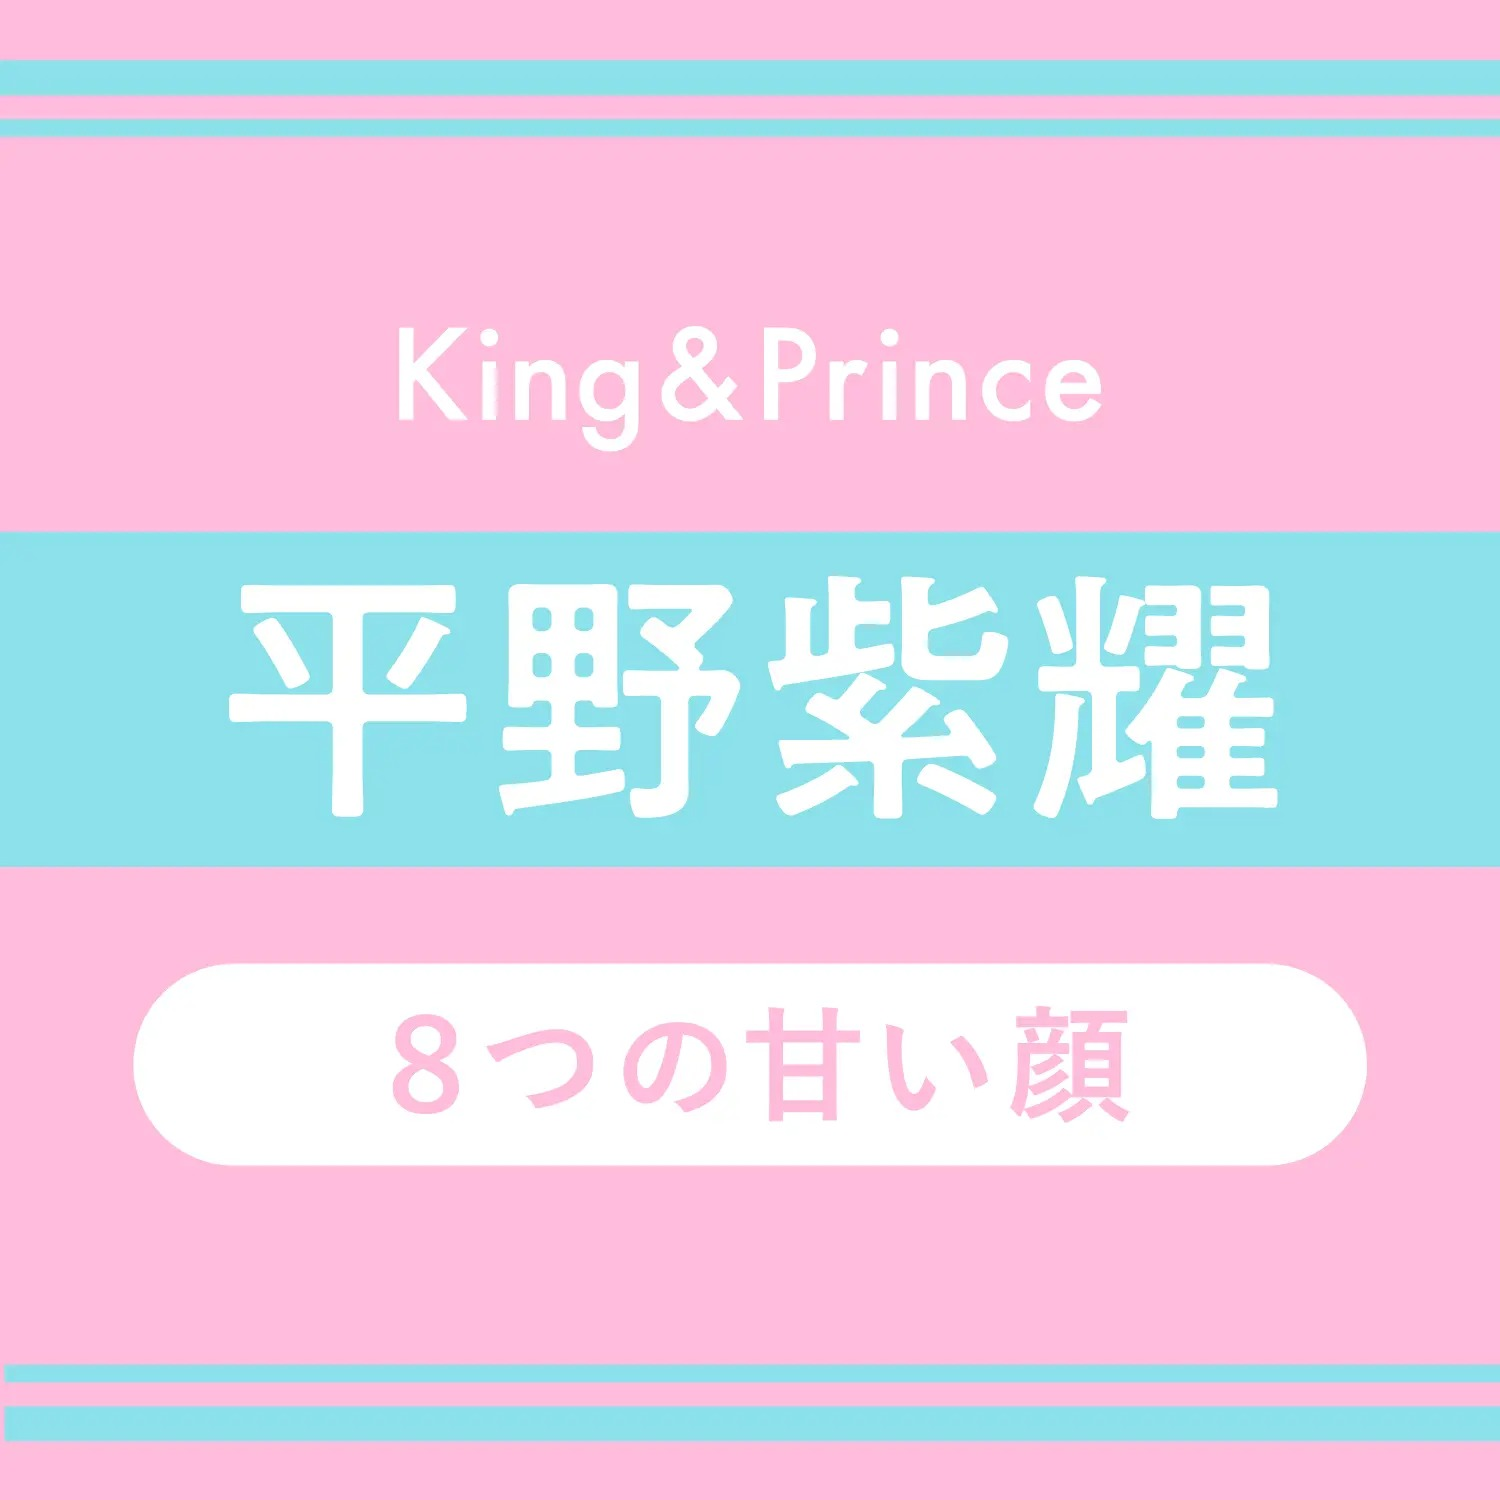 King & Prince平野紫耀 8つの甘い顔